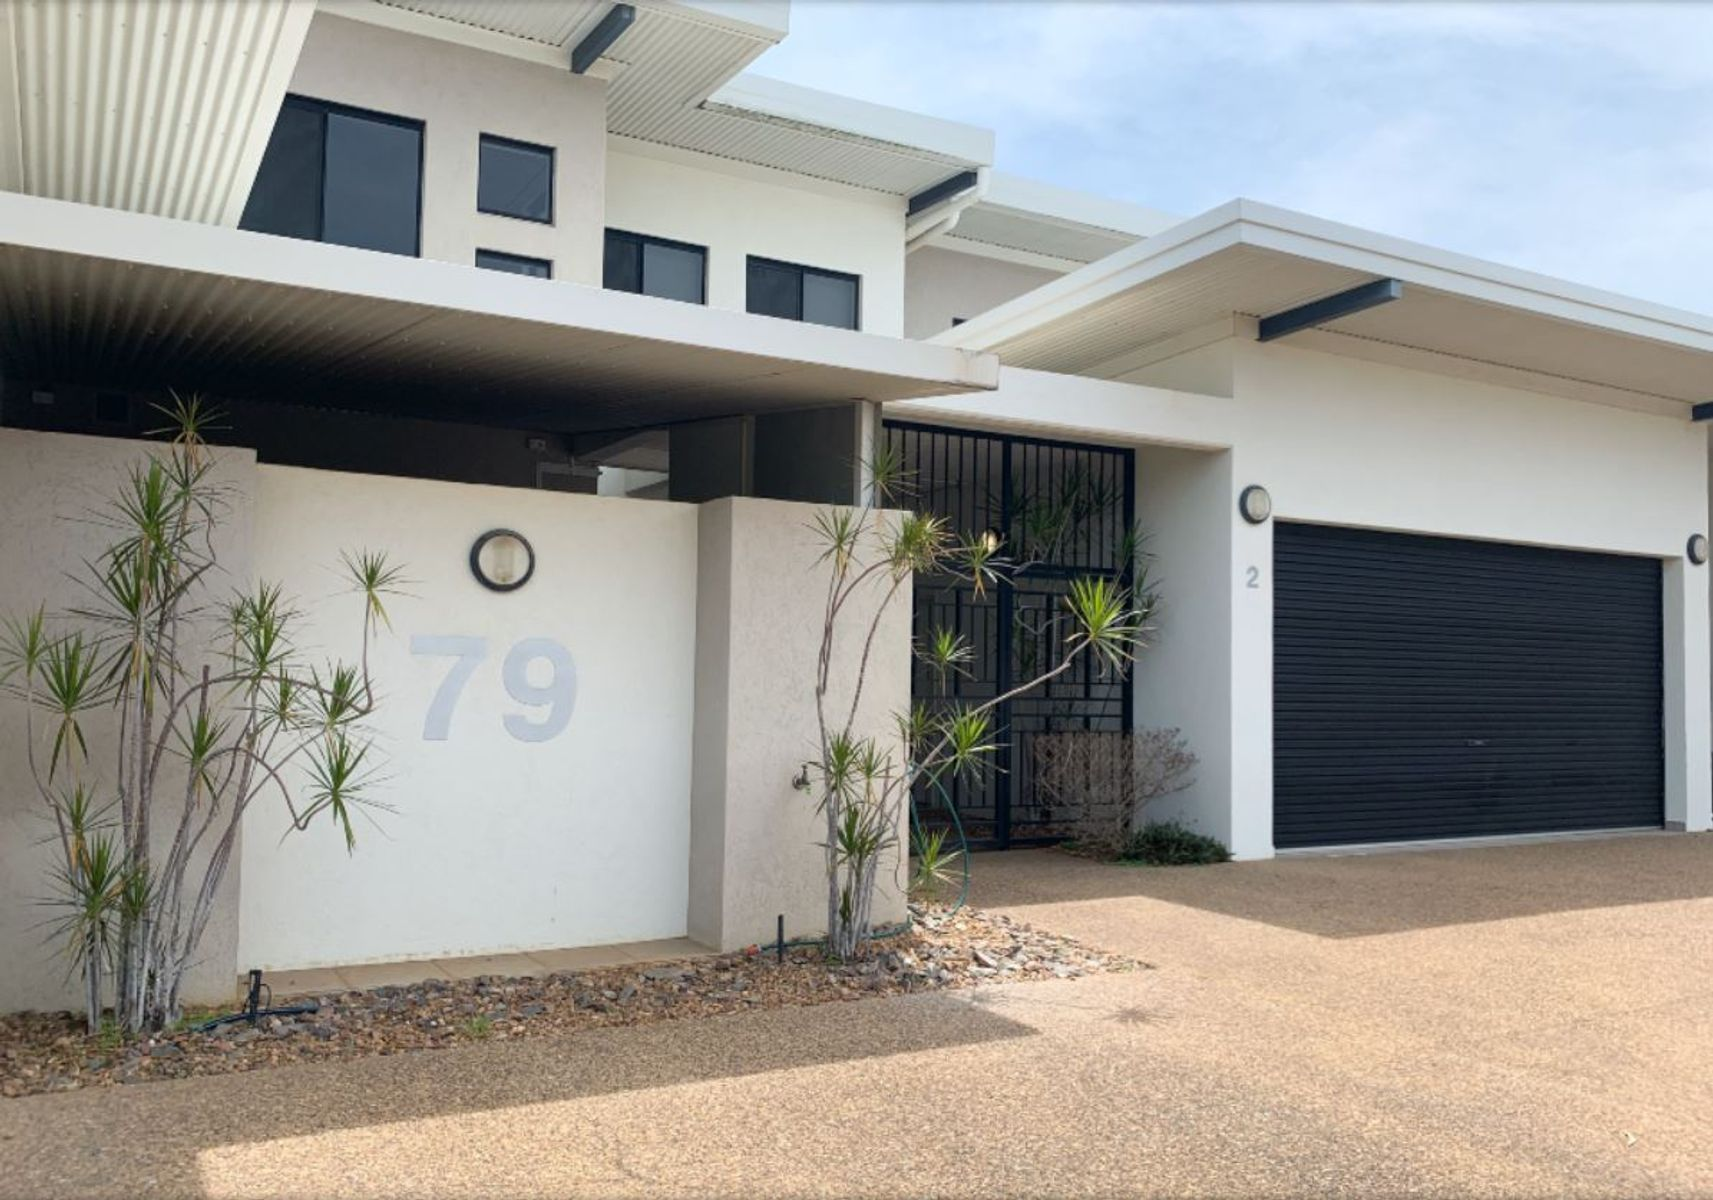 2/79 Oferrals Road Bayview, Bayview, NT 0820